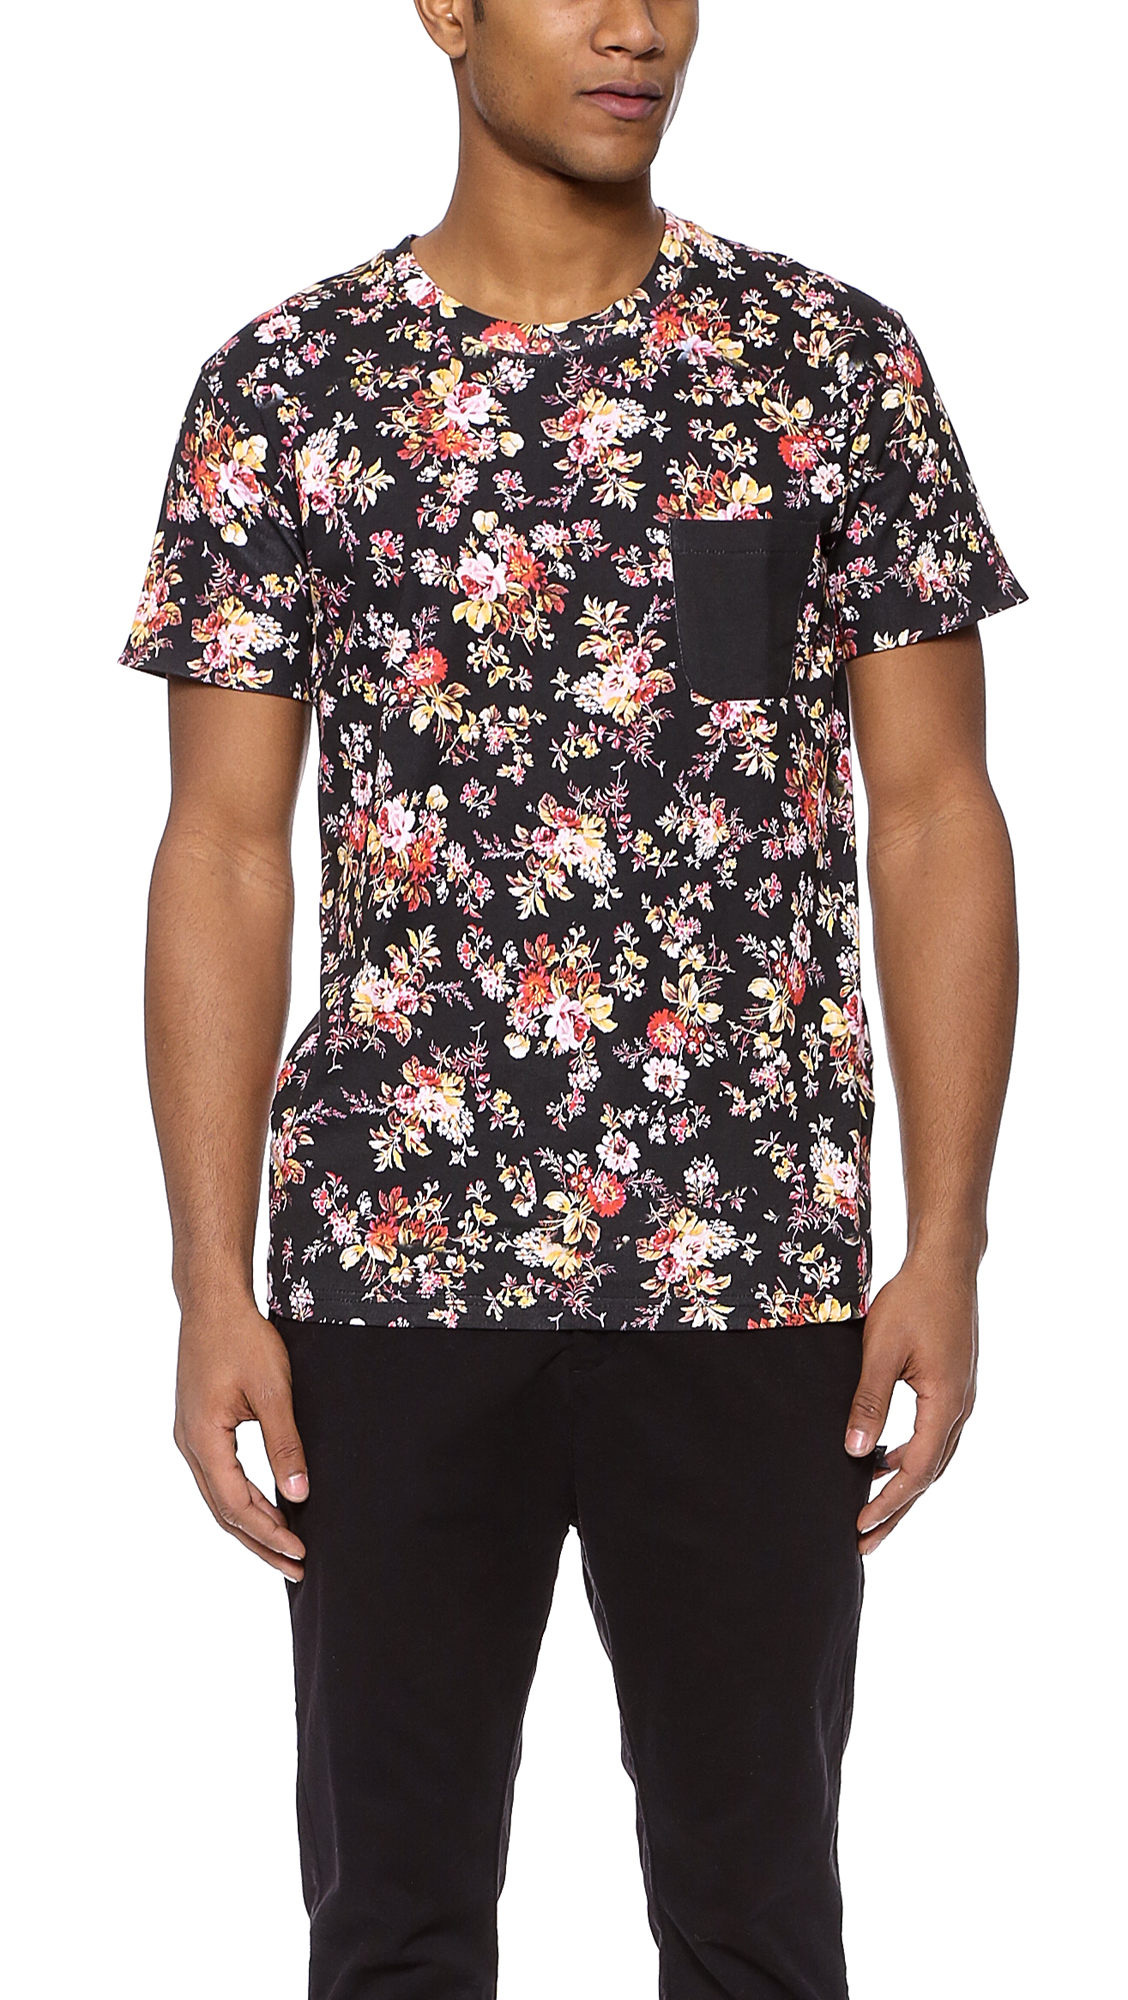 ElevenParis Arety T-Shirt | Men's Prints